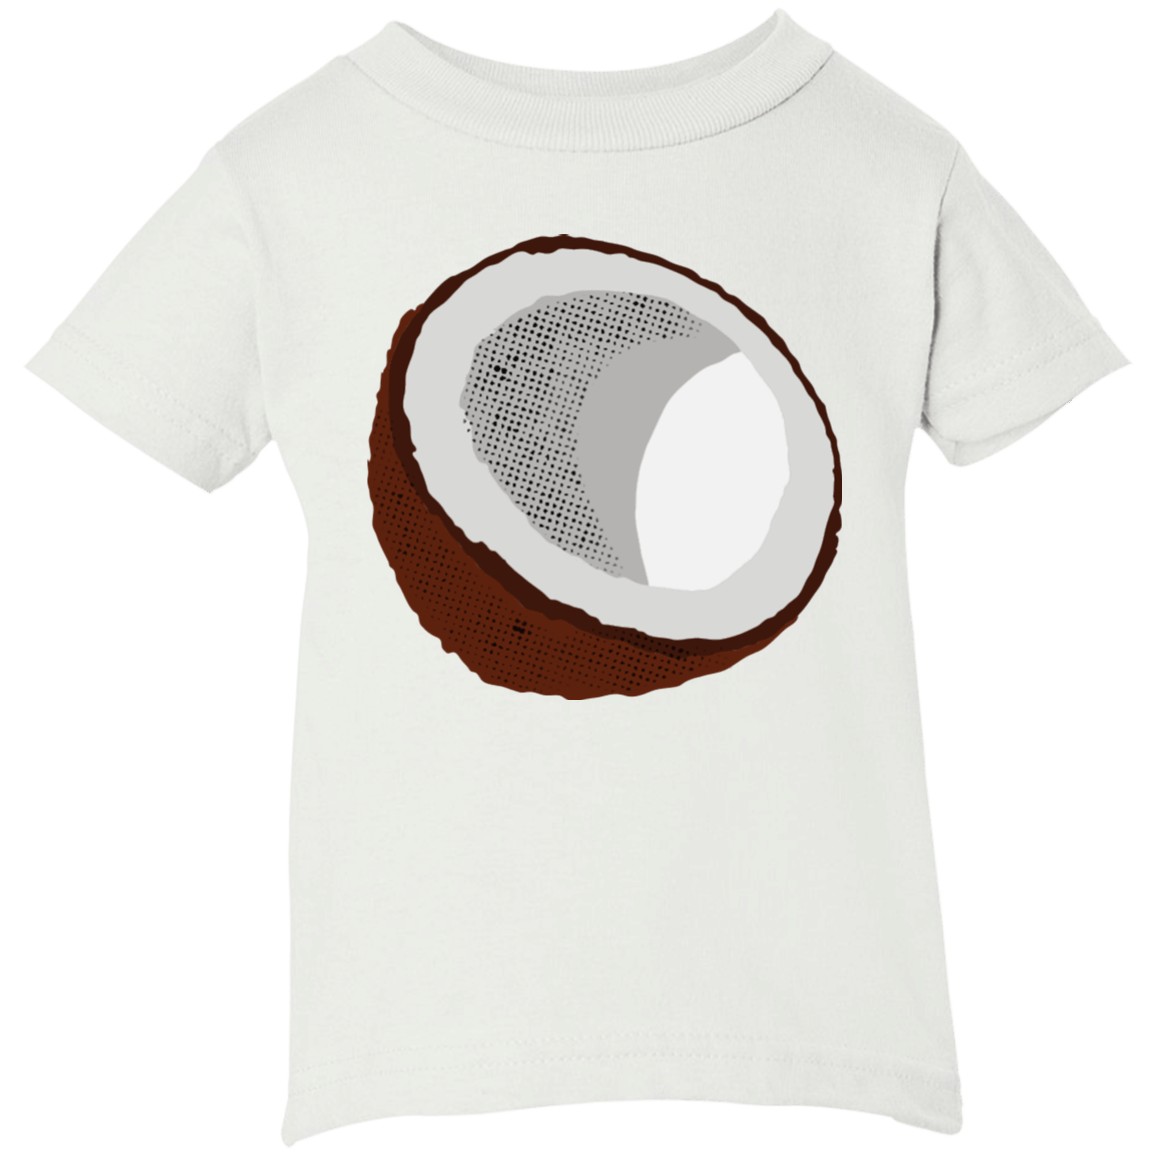 Coconut Infant Short Sleeve T-Shirt